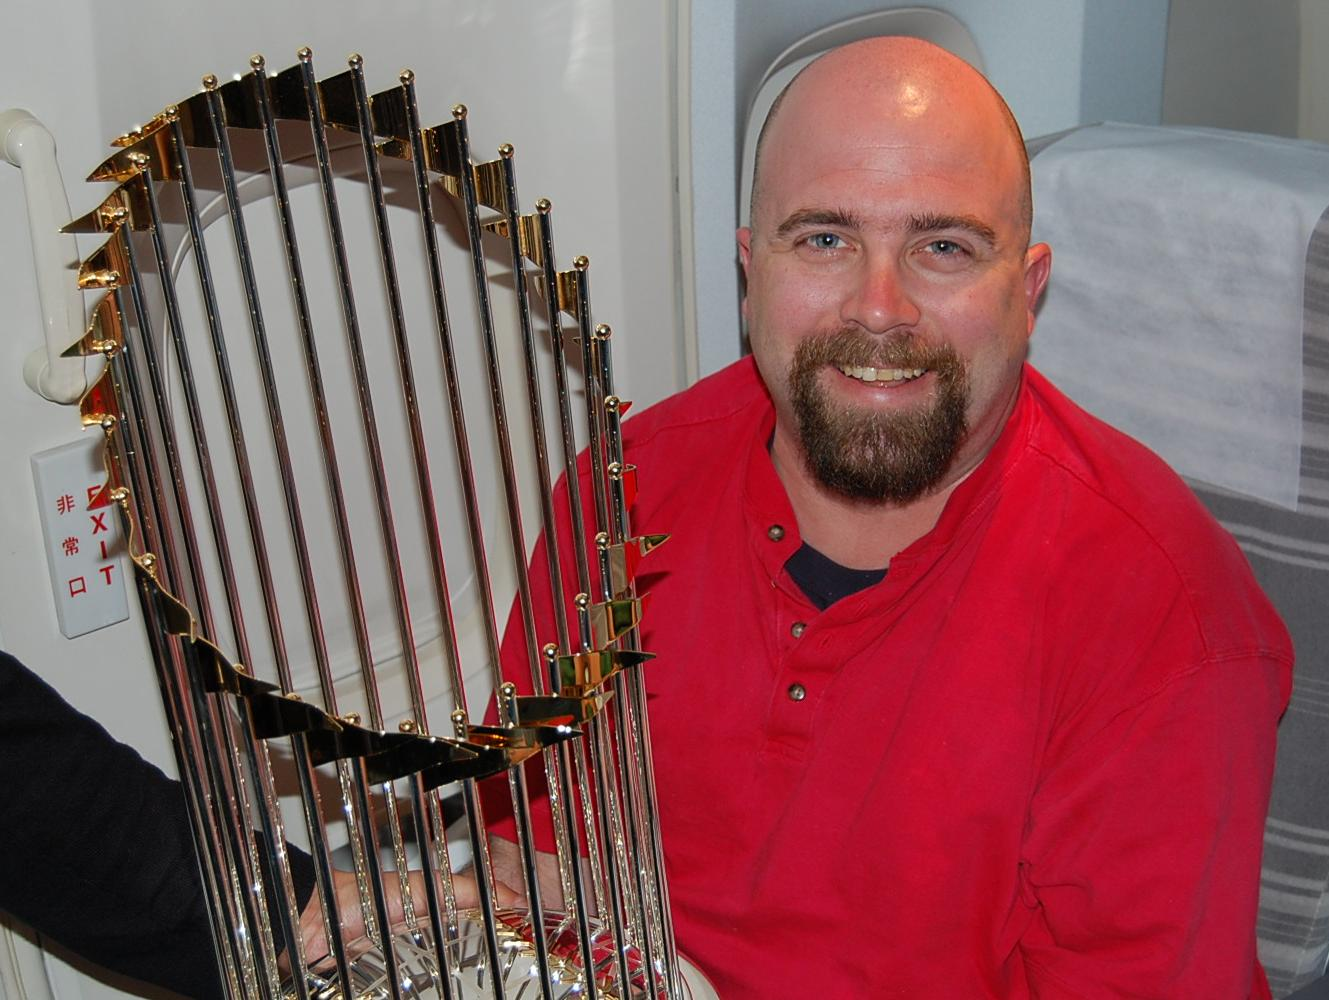 the 2007 World Series Trophy (and me)